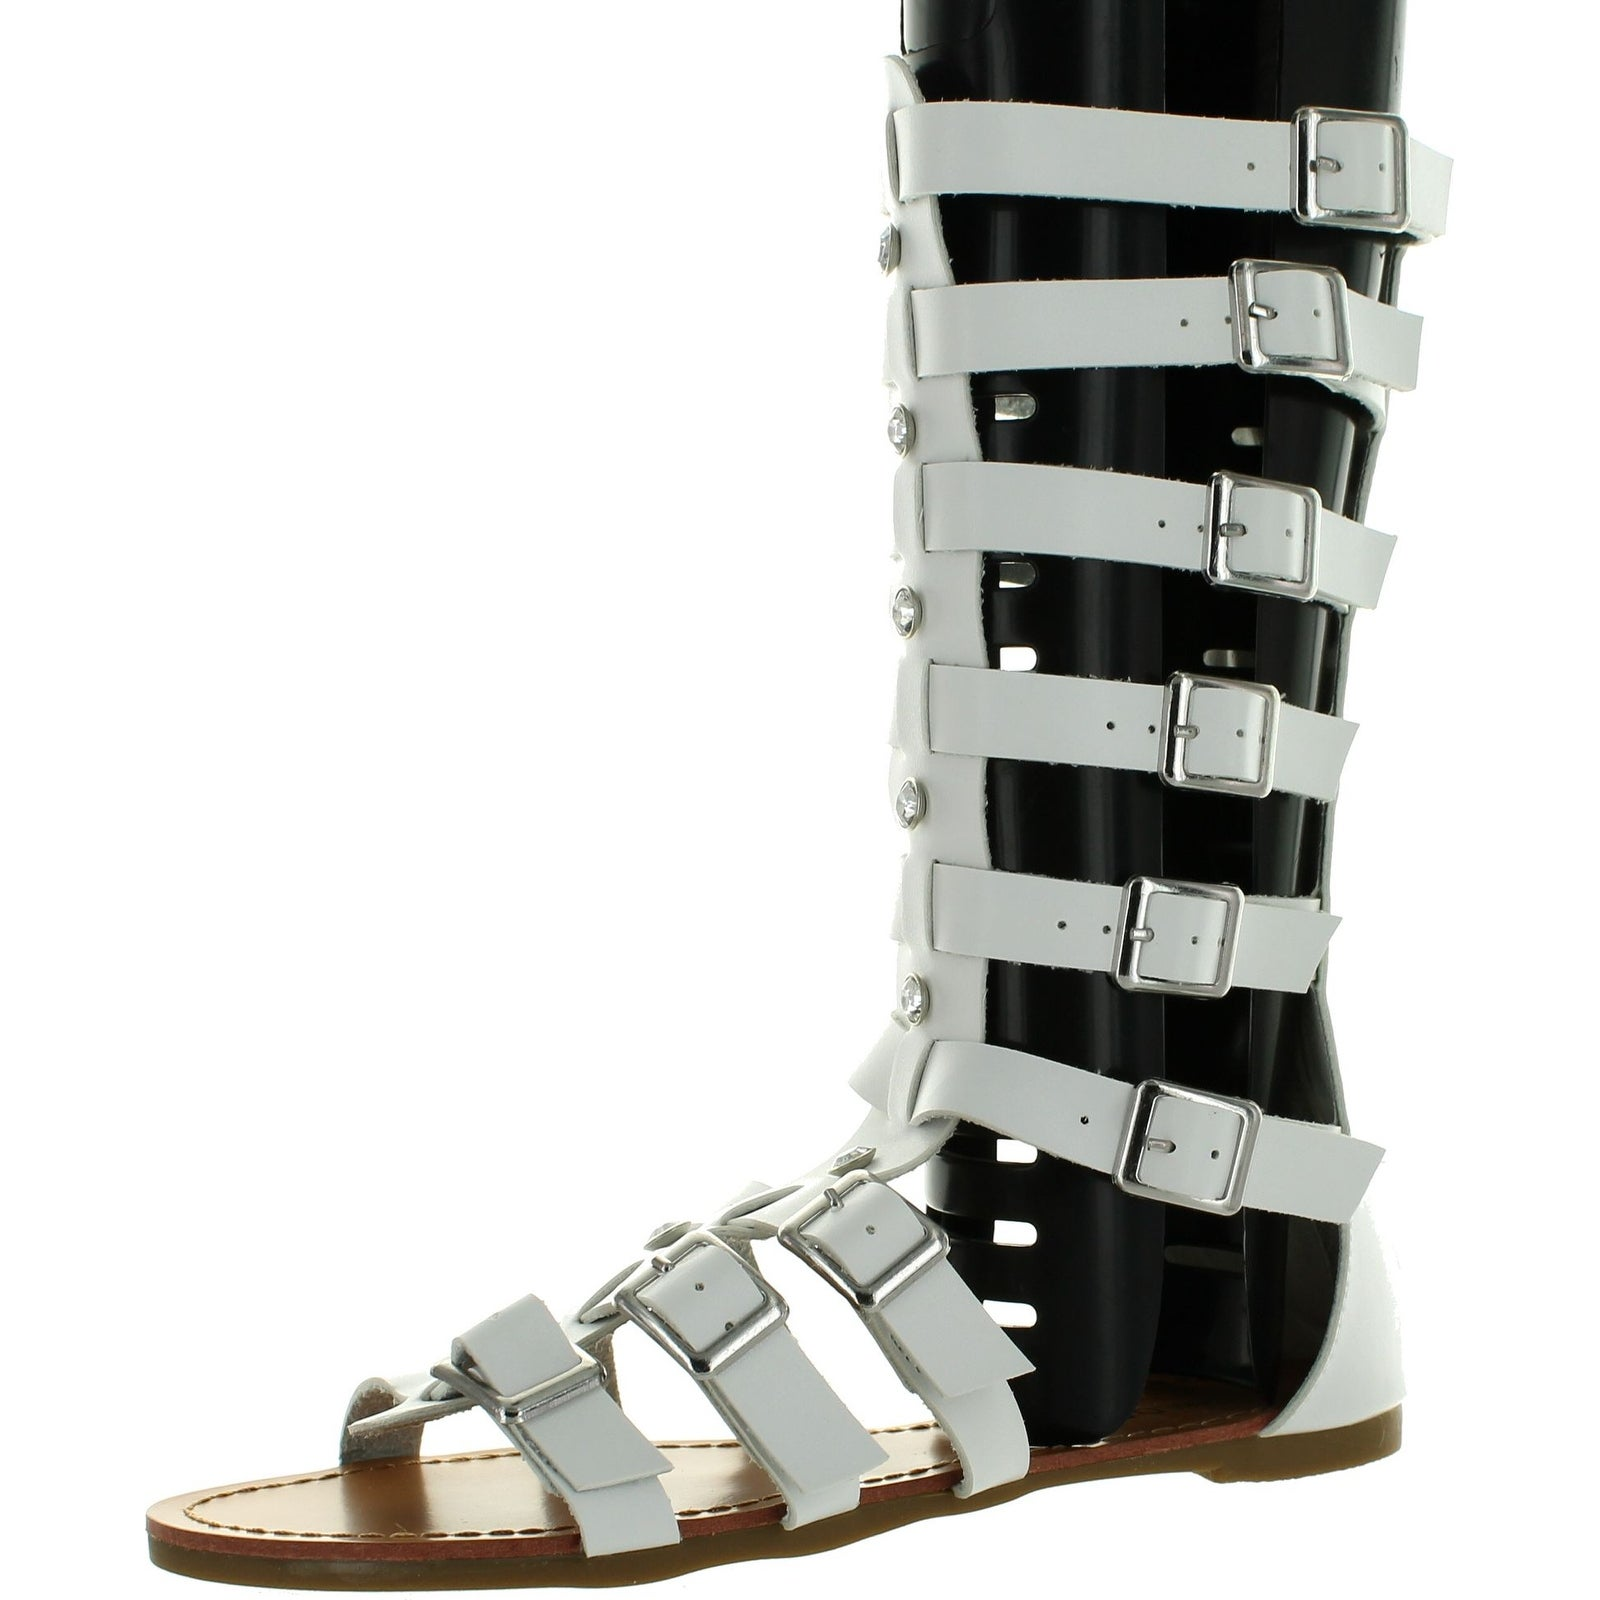 c9c9b2d32721 Shop Wild Diva Lounge Womens Jade-01 White Faux Leather Rhinestone  Gladiator Sandal - Free Shipping On Orders Over  45 - Overstock - 14809712